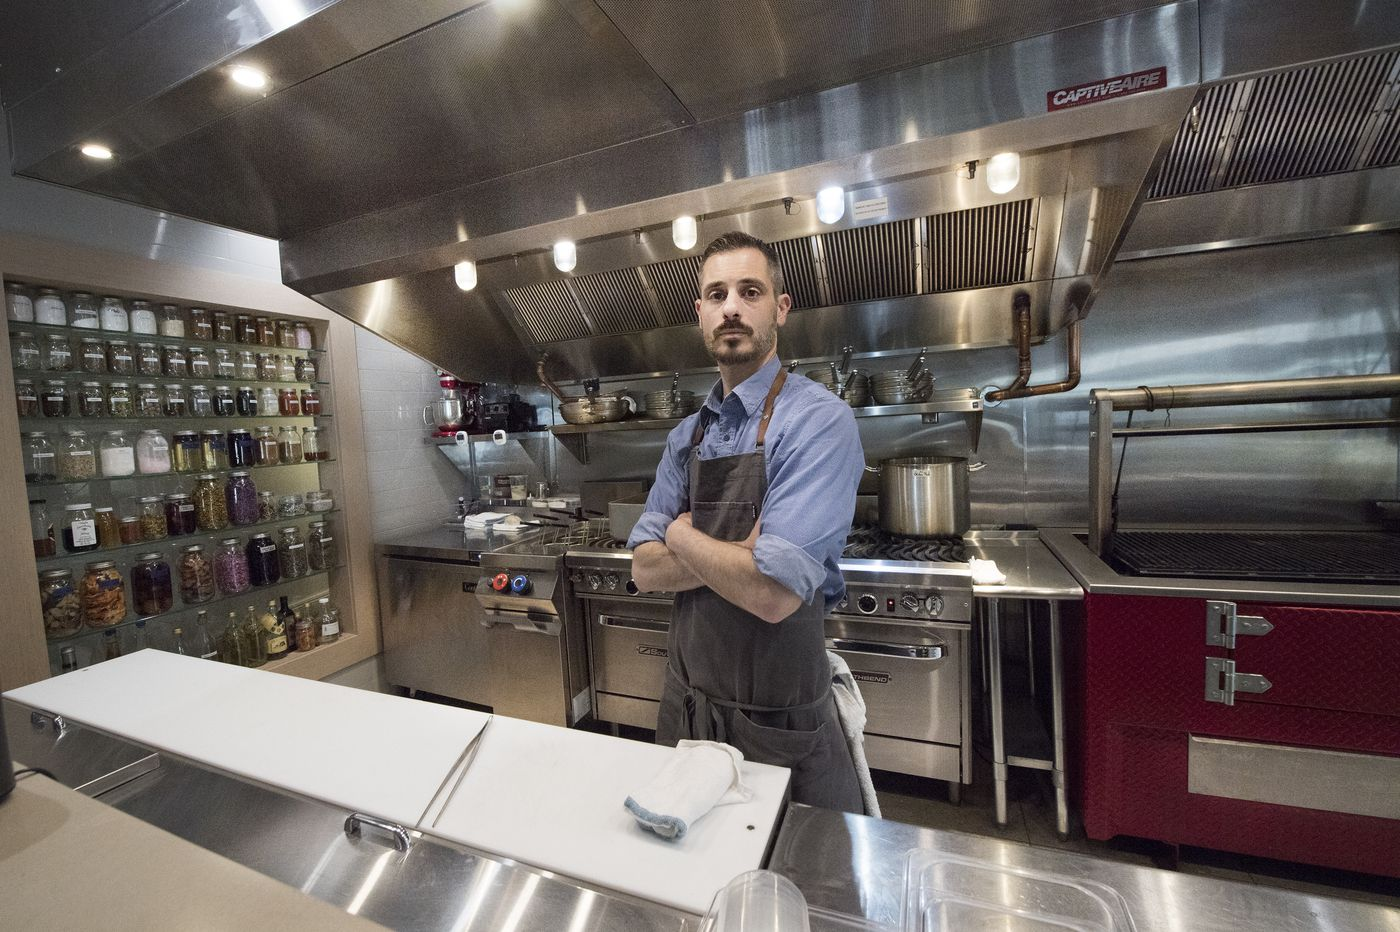 After finding themselves unexpectedly homeless in West Chester, chef and his wife put down roots at Andiario